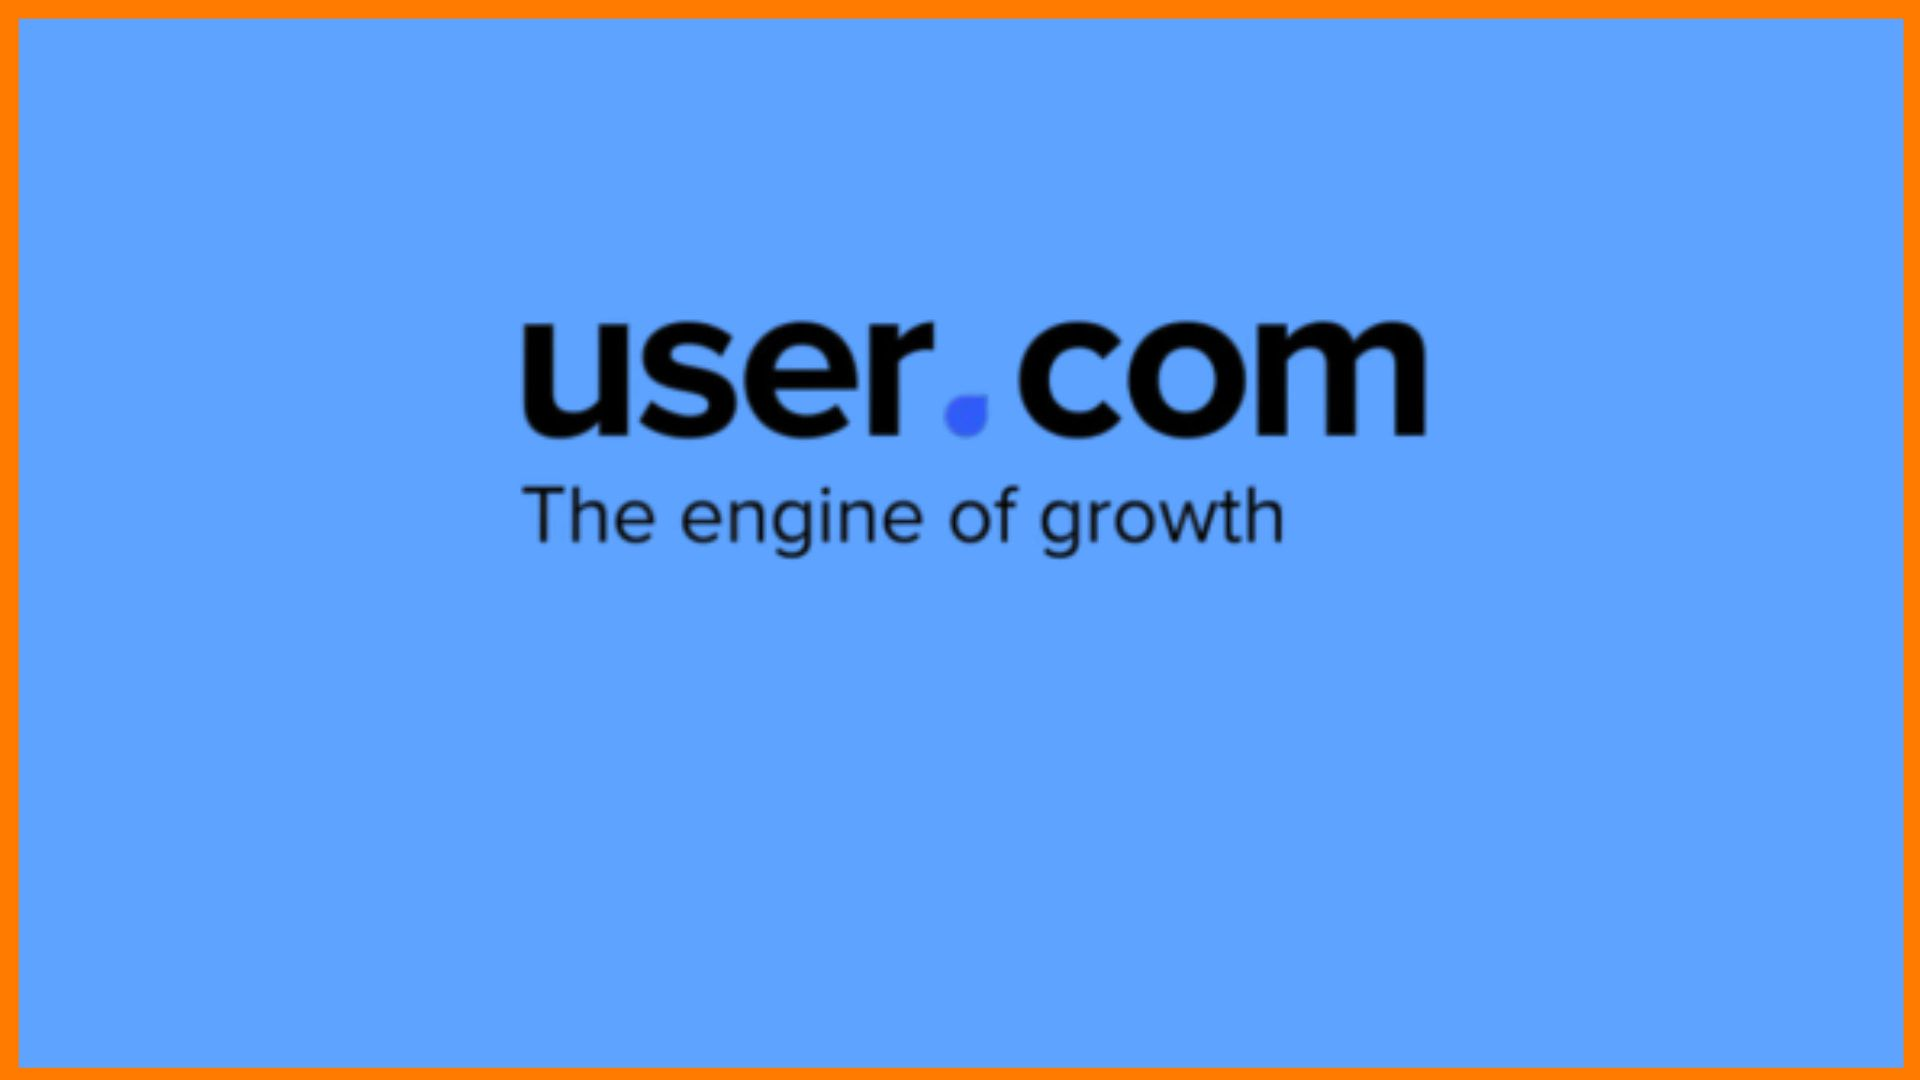 User.com - An Advanced Marketing and Sales Automation Software